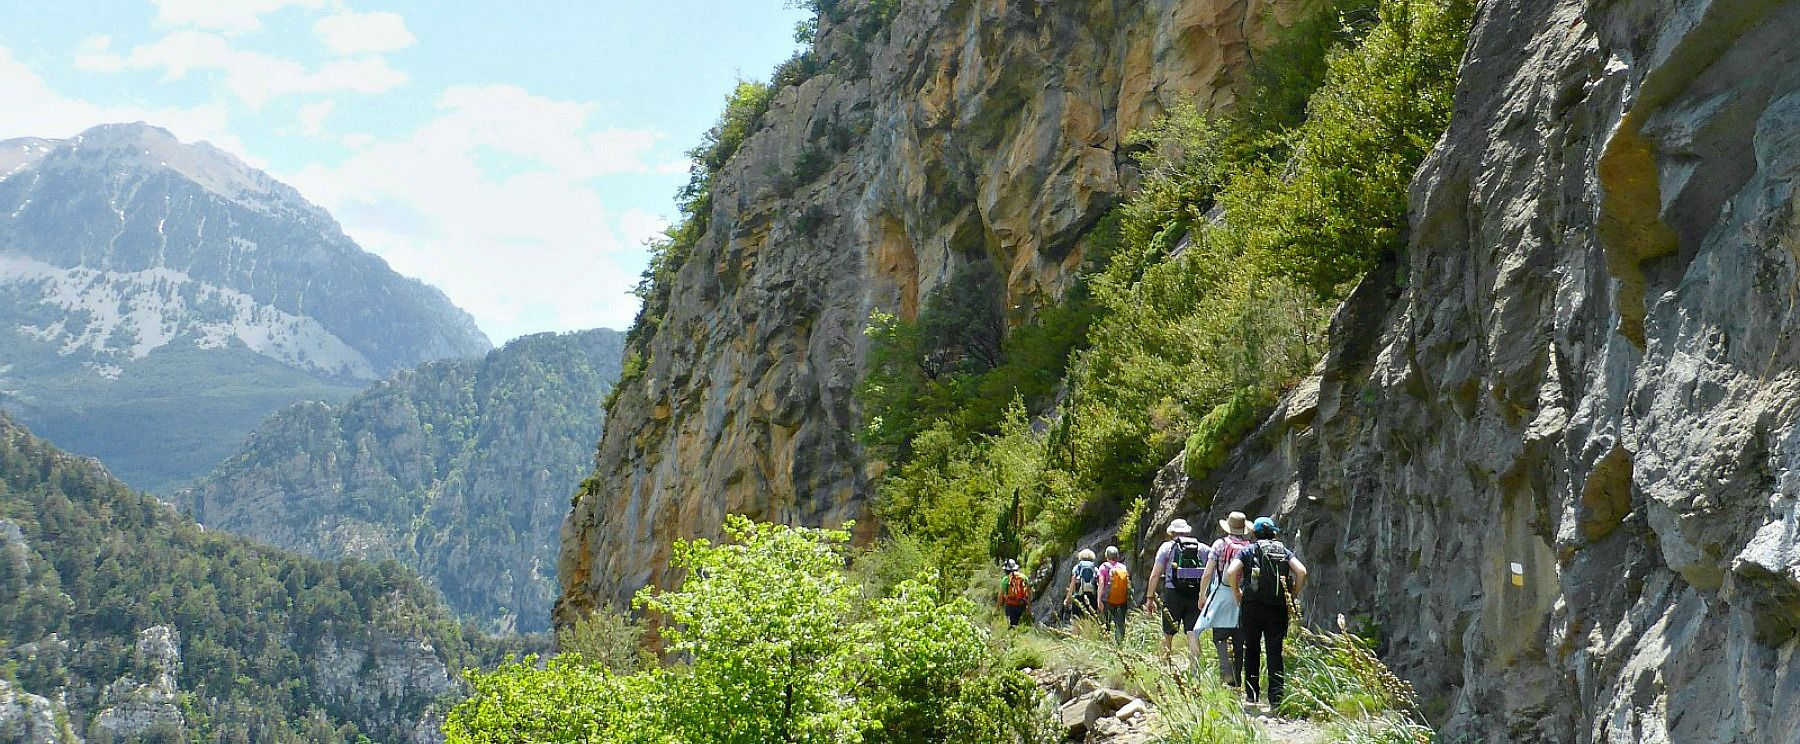 Walkers on a faja in the Ordesa National Park on Aragon Active Guided Walking Holiday Spain